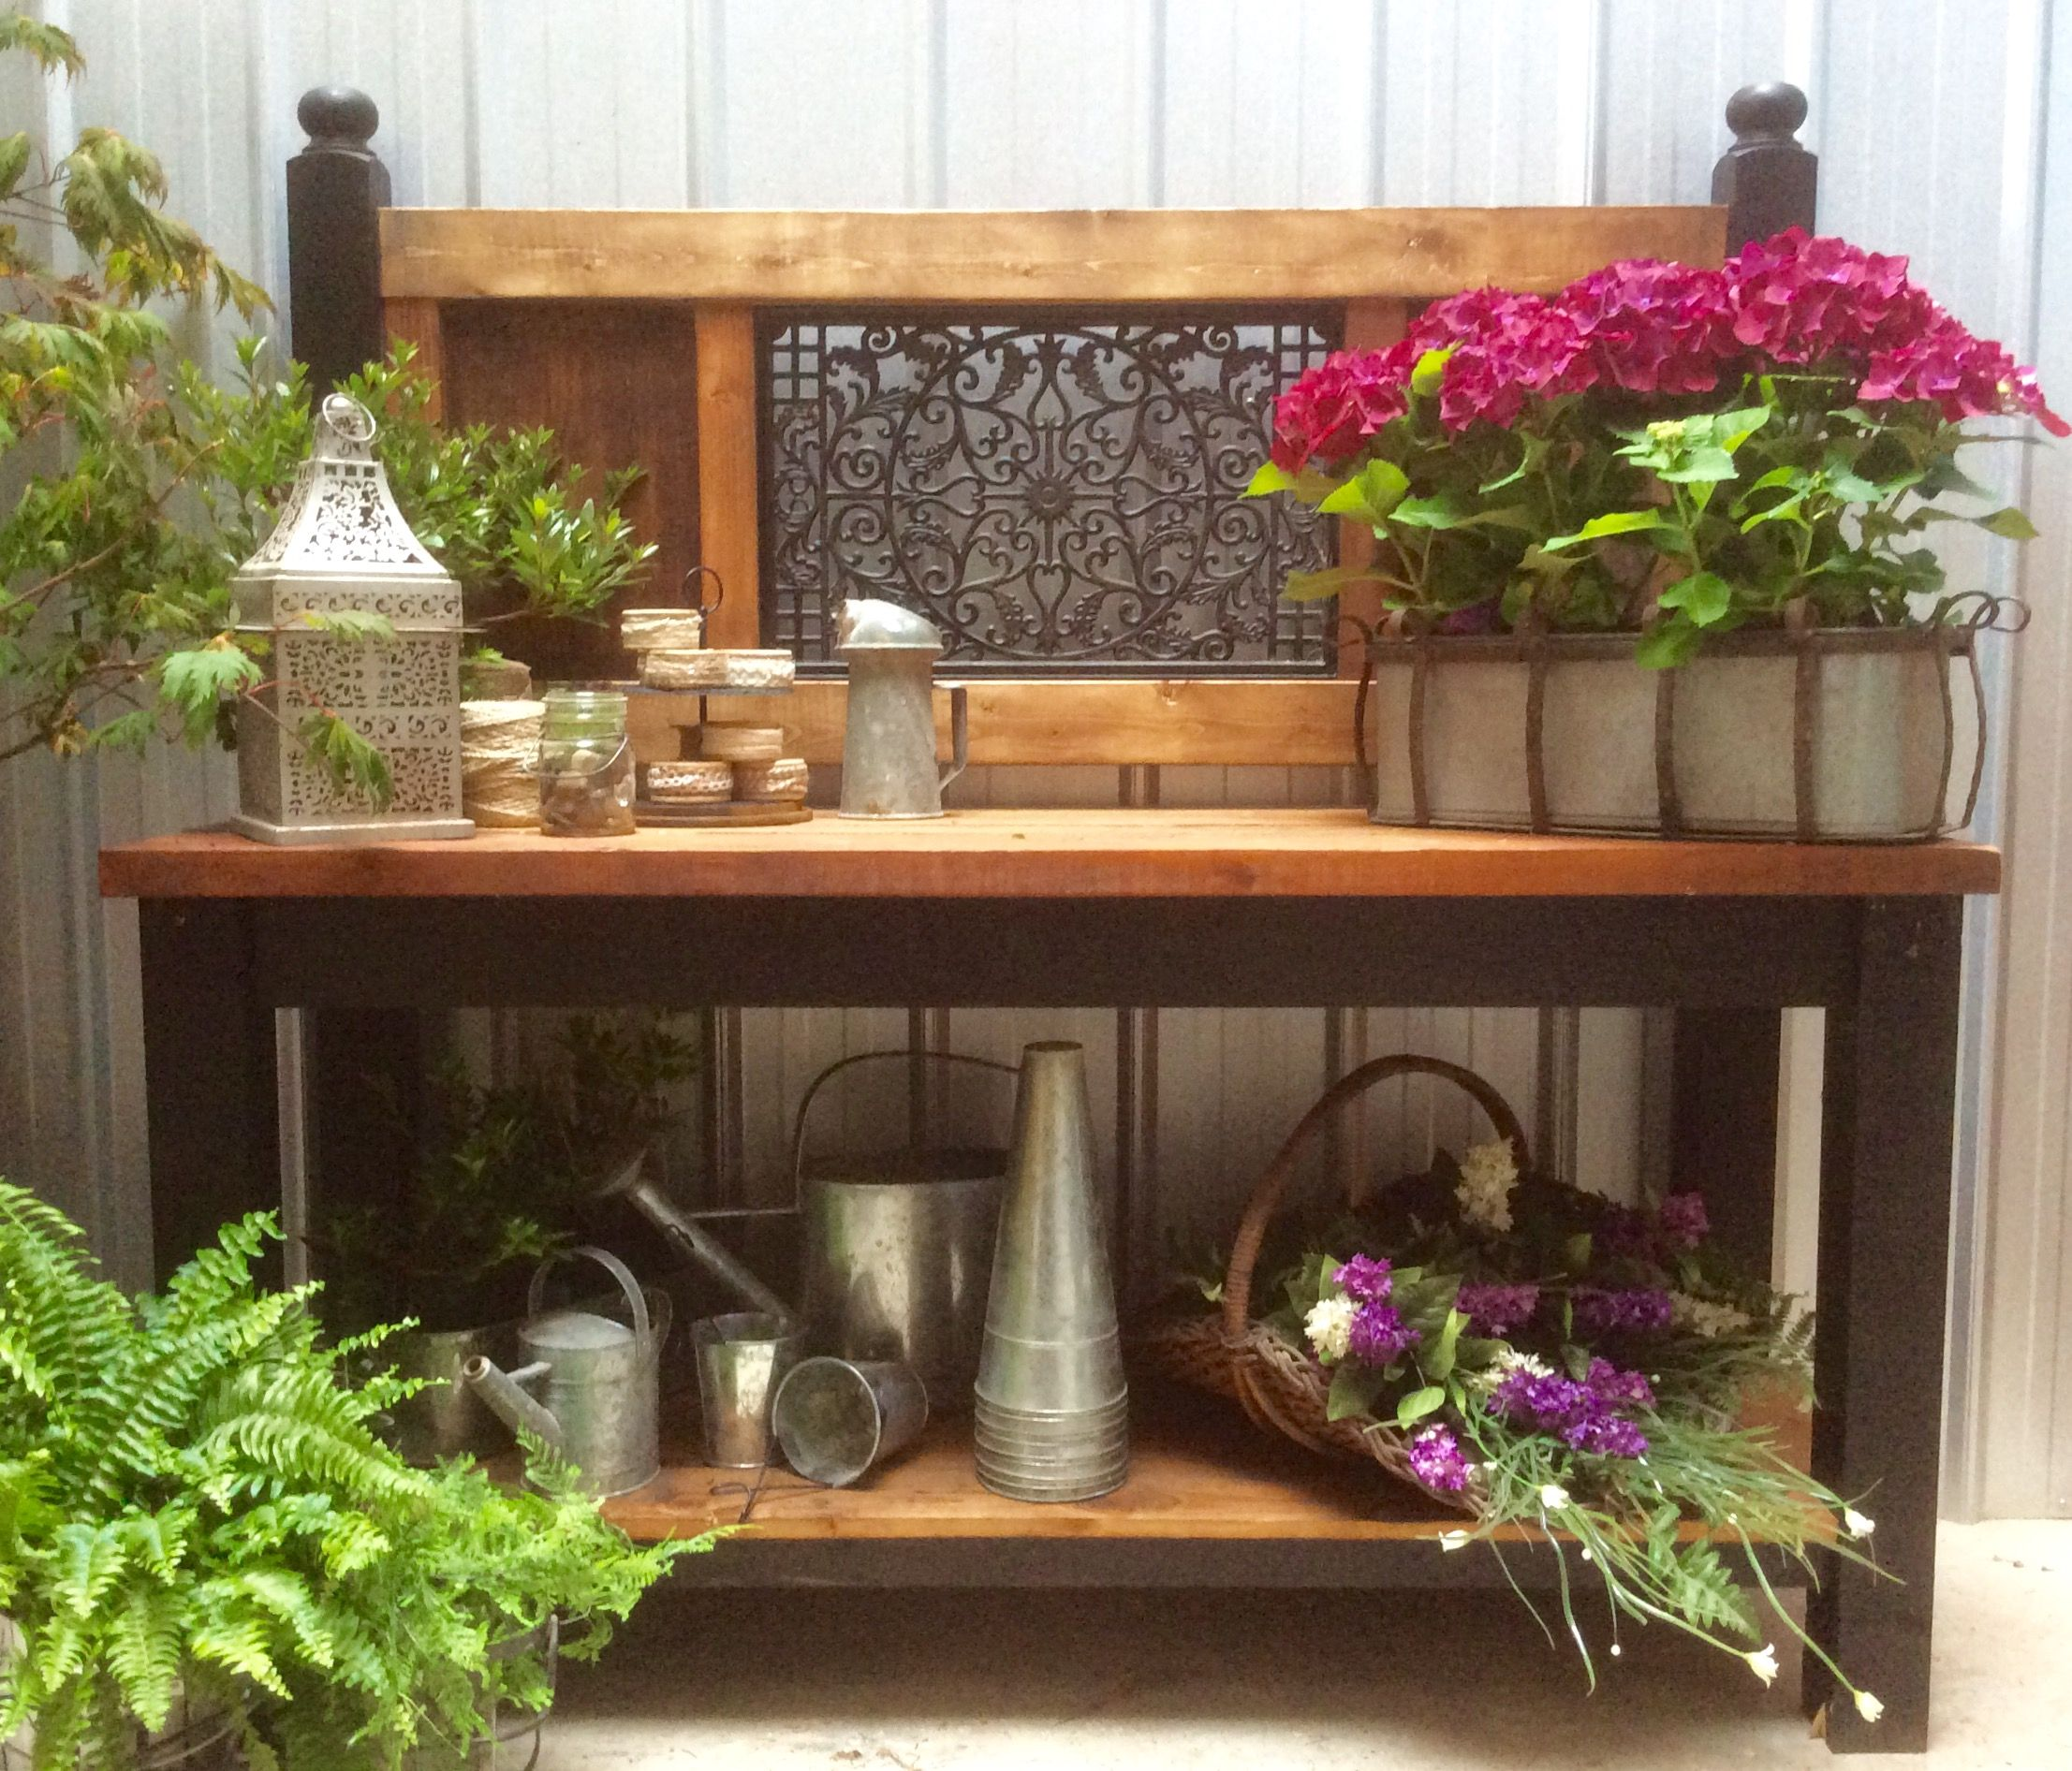 I love building these potting benches. I can teach you to build them too.